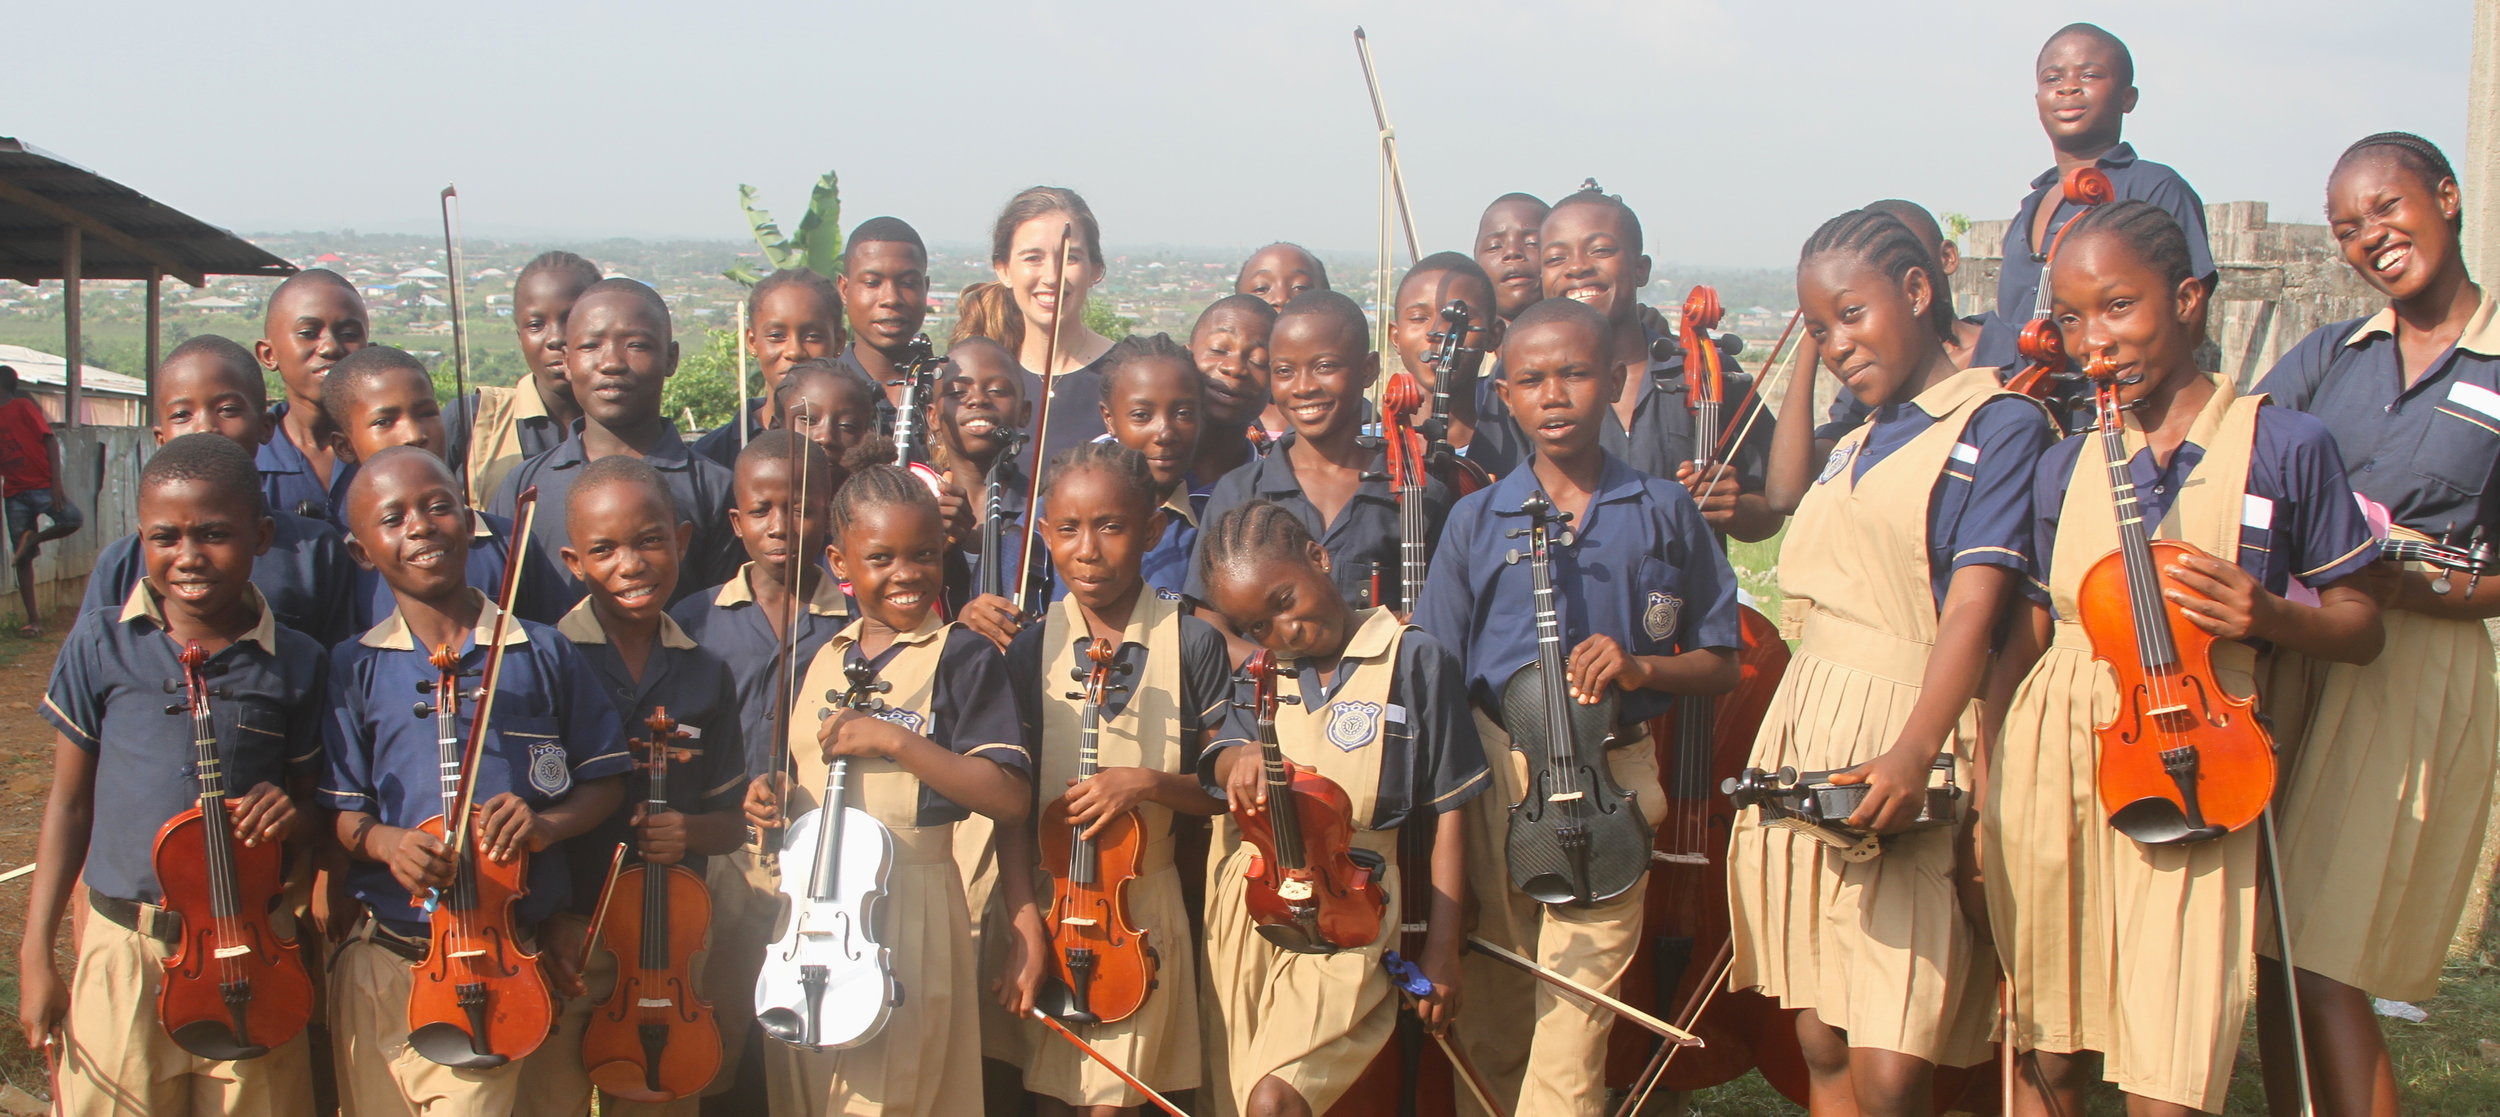 Transforming Liberia through string music education